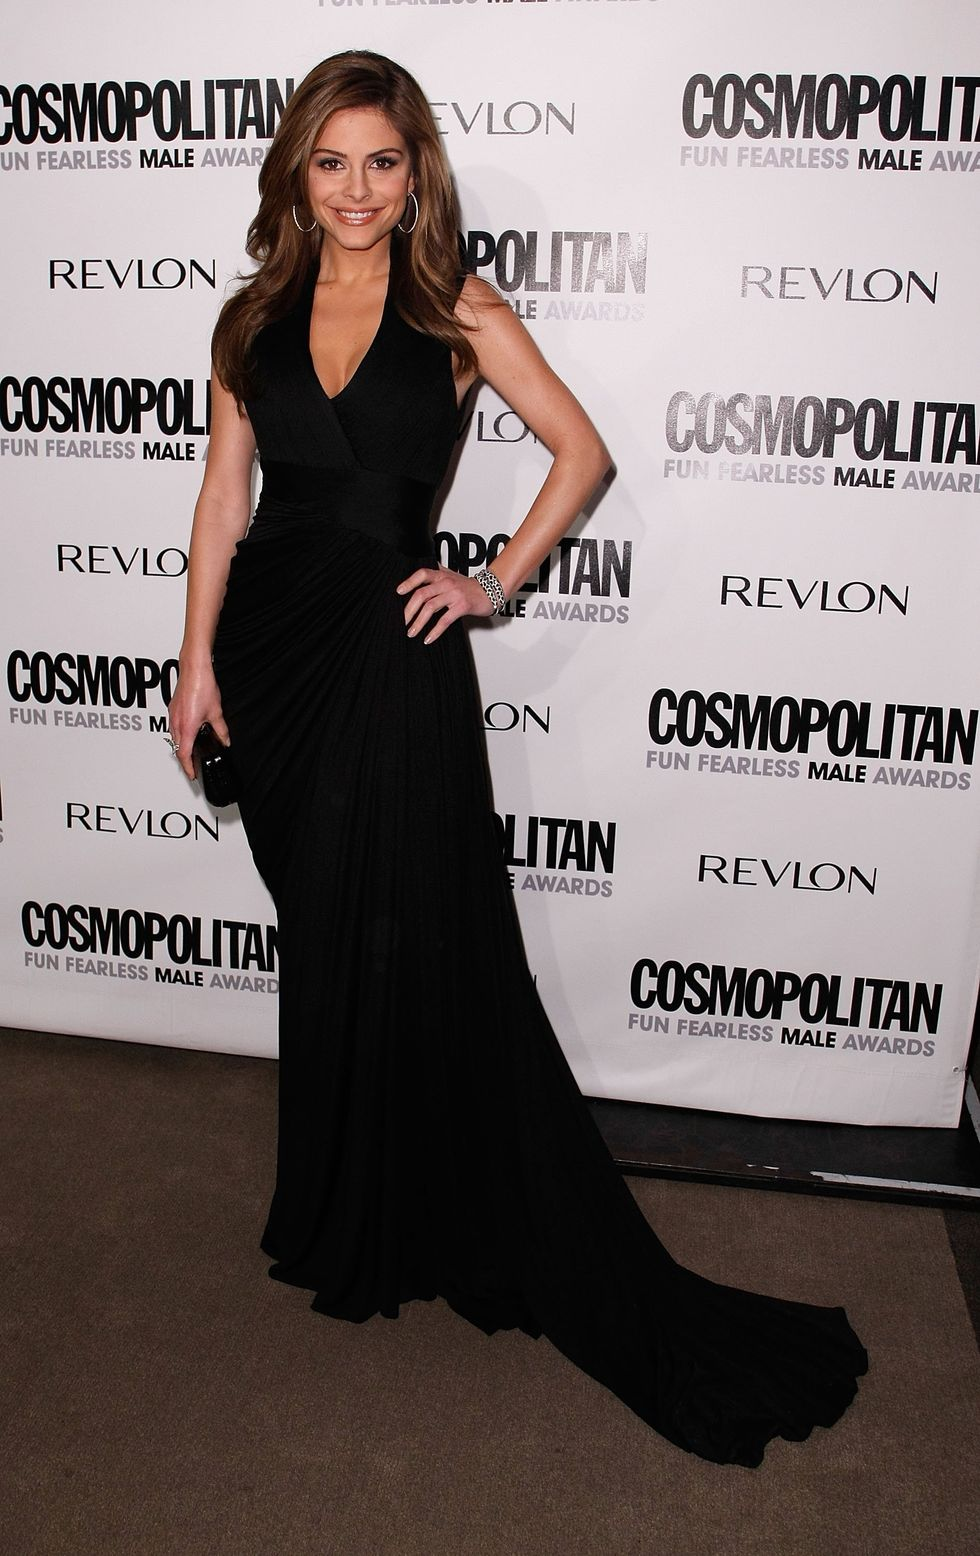 maria-menounos-cosmopolitan-honors-its-fun-fearless-males-of-2009-in-beverly-hills-01